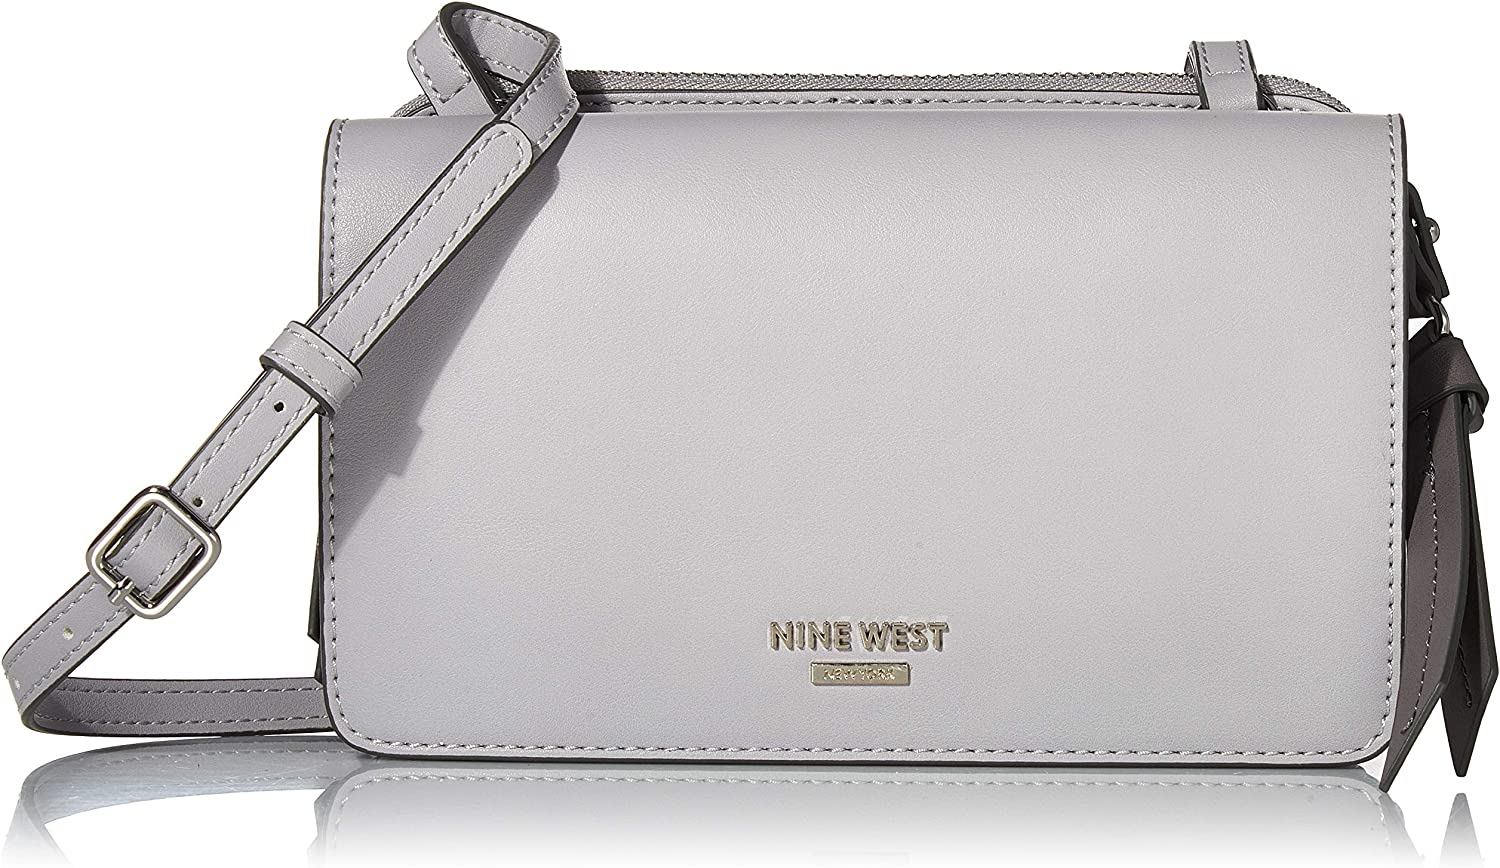 NINE WEST Crossbody